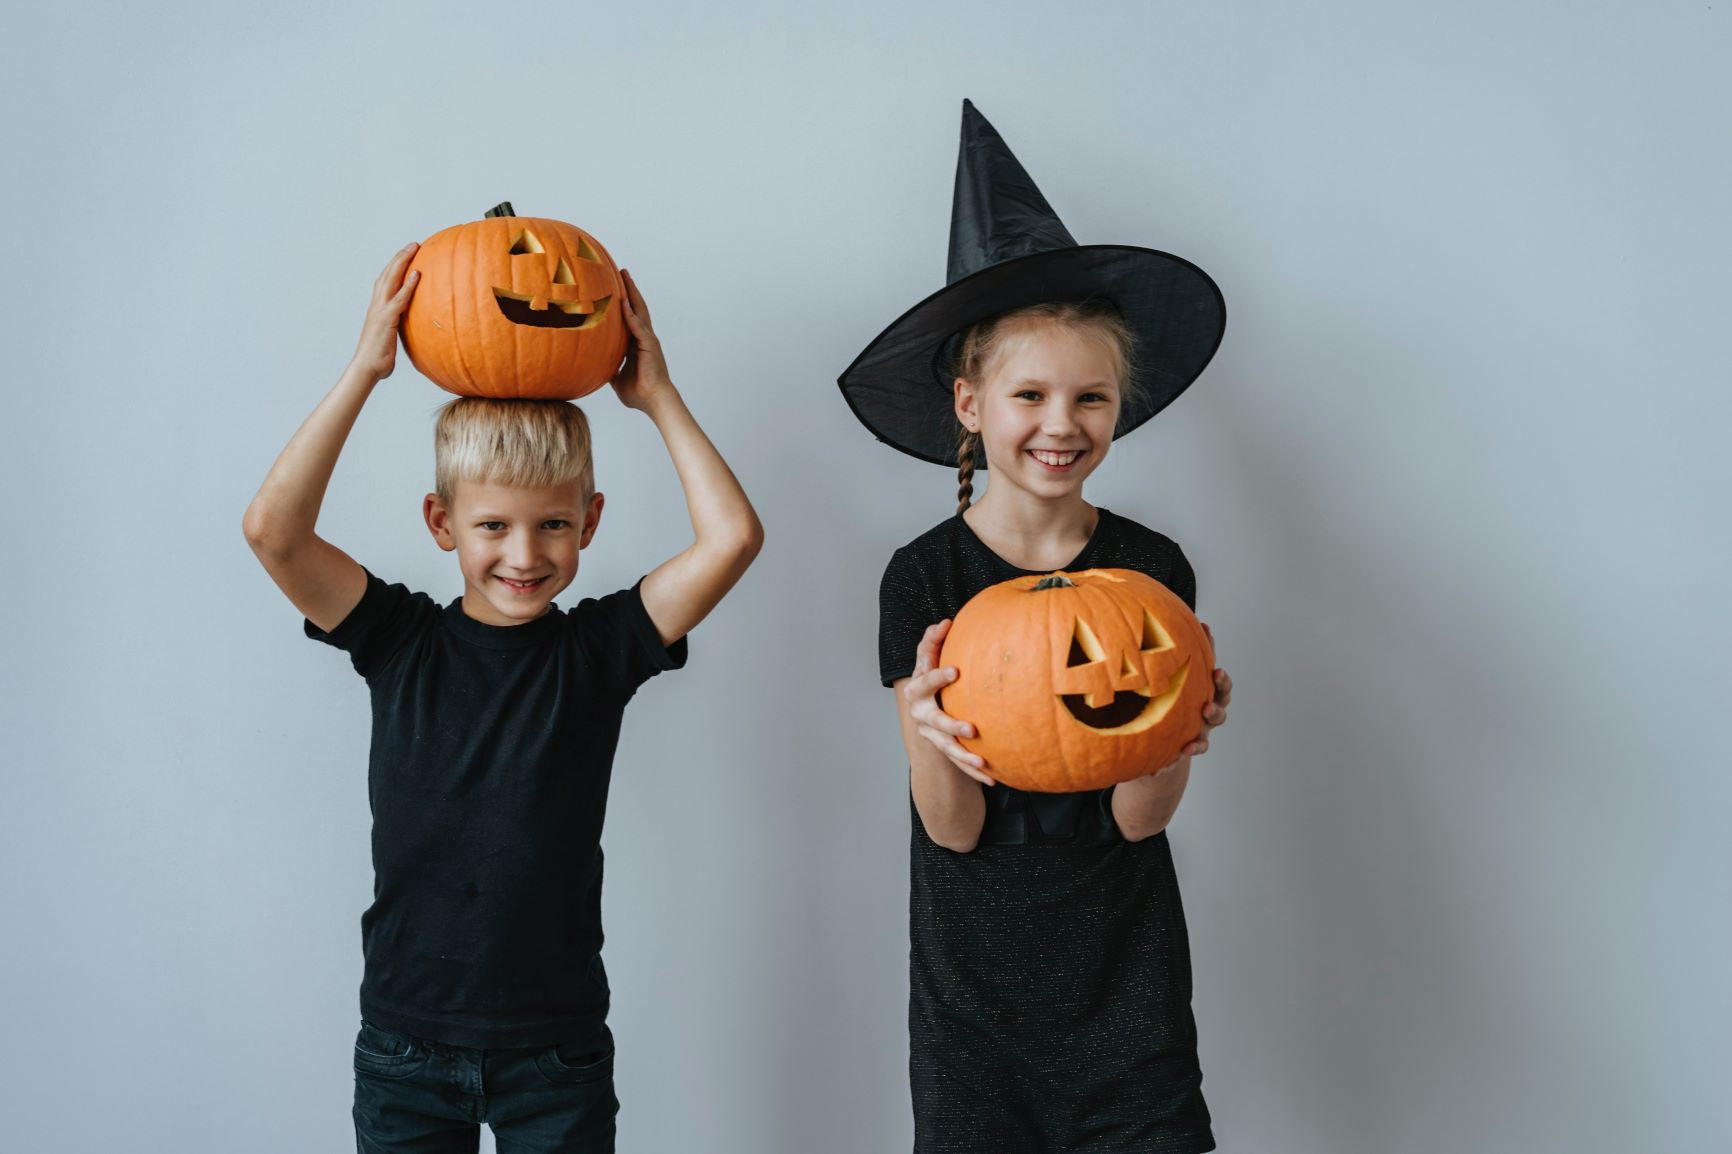 Ideas to safely celebrate Halloween